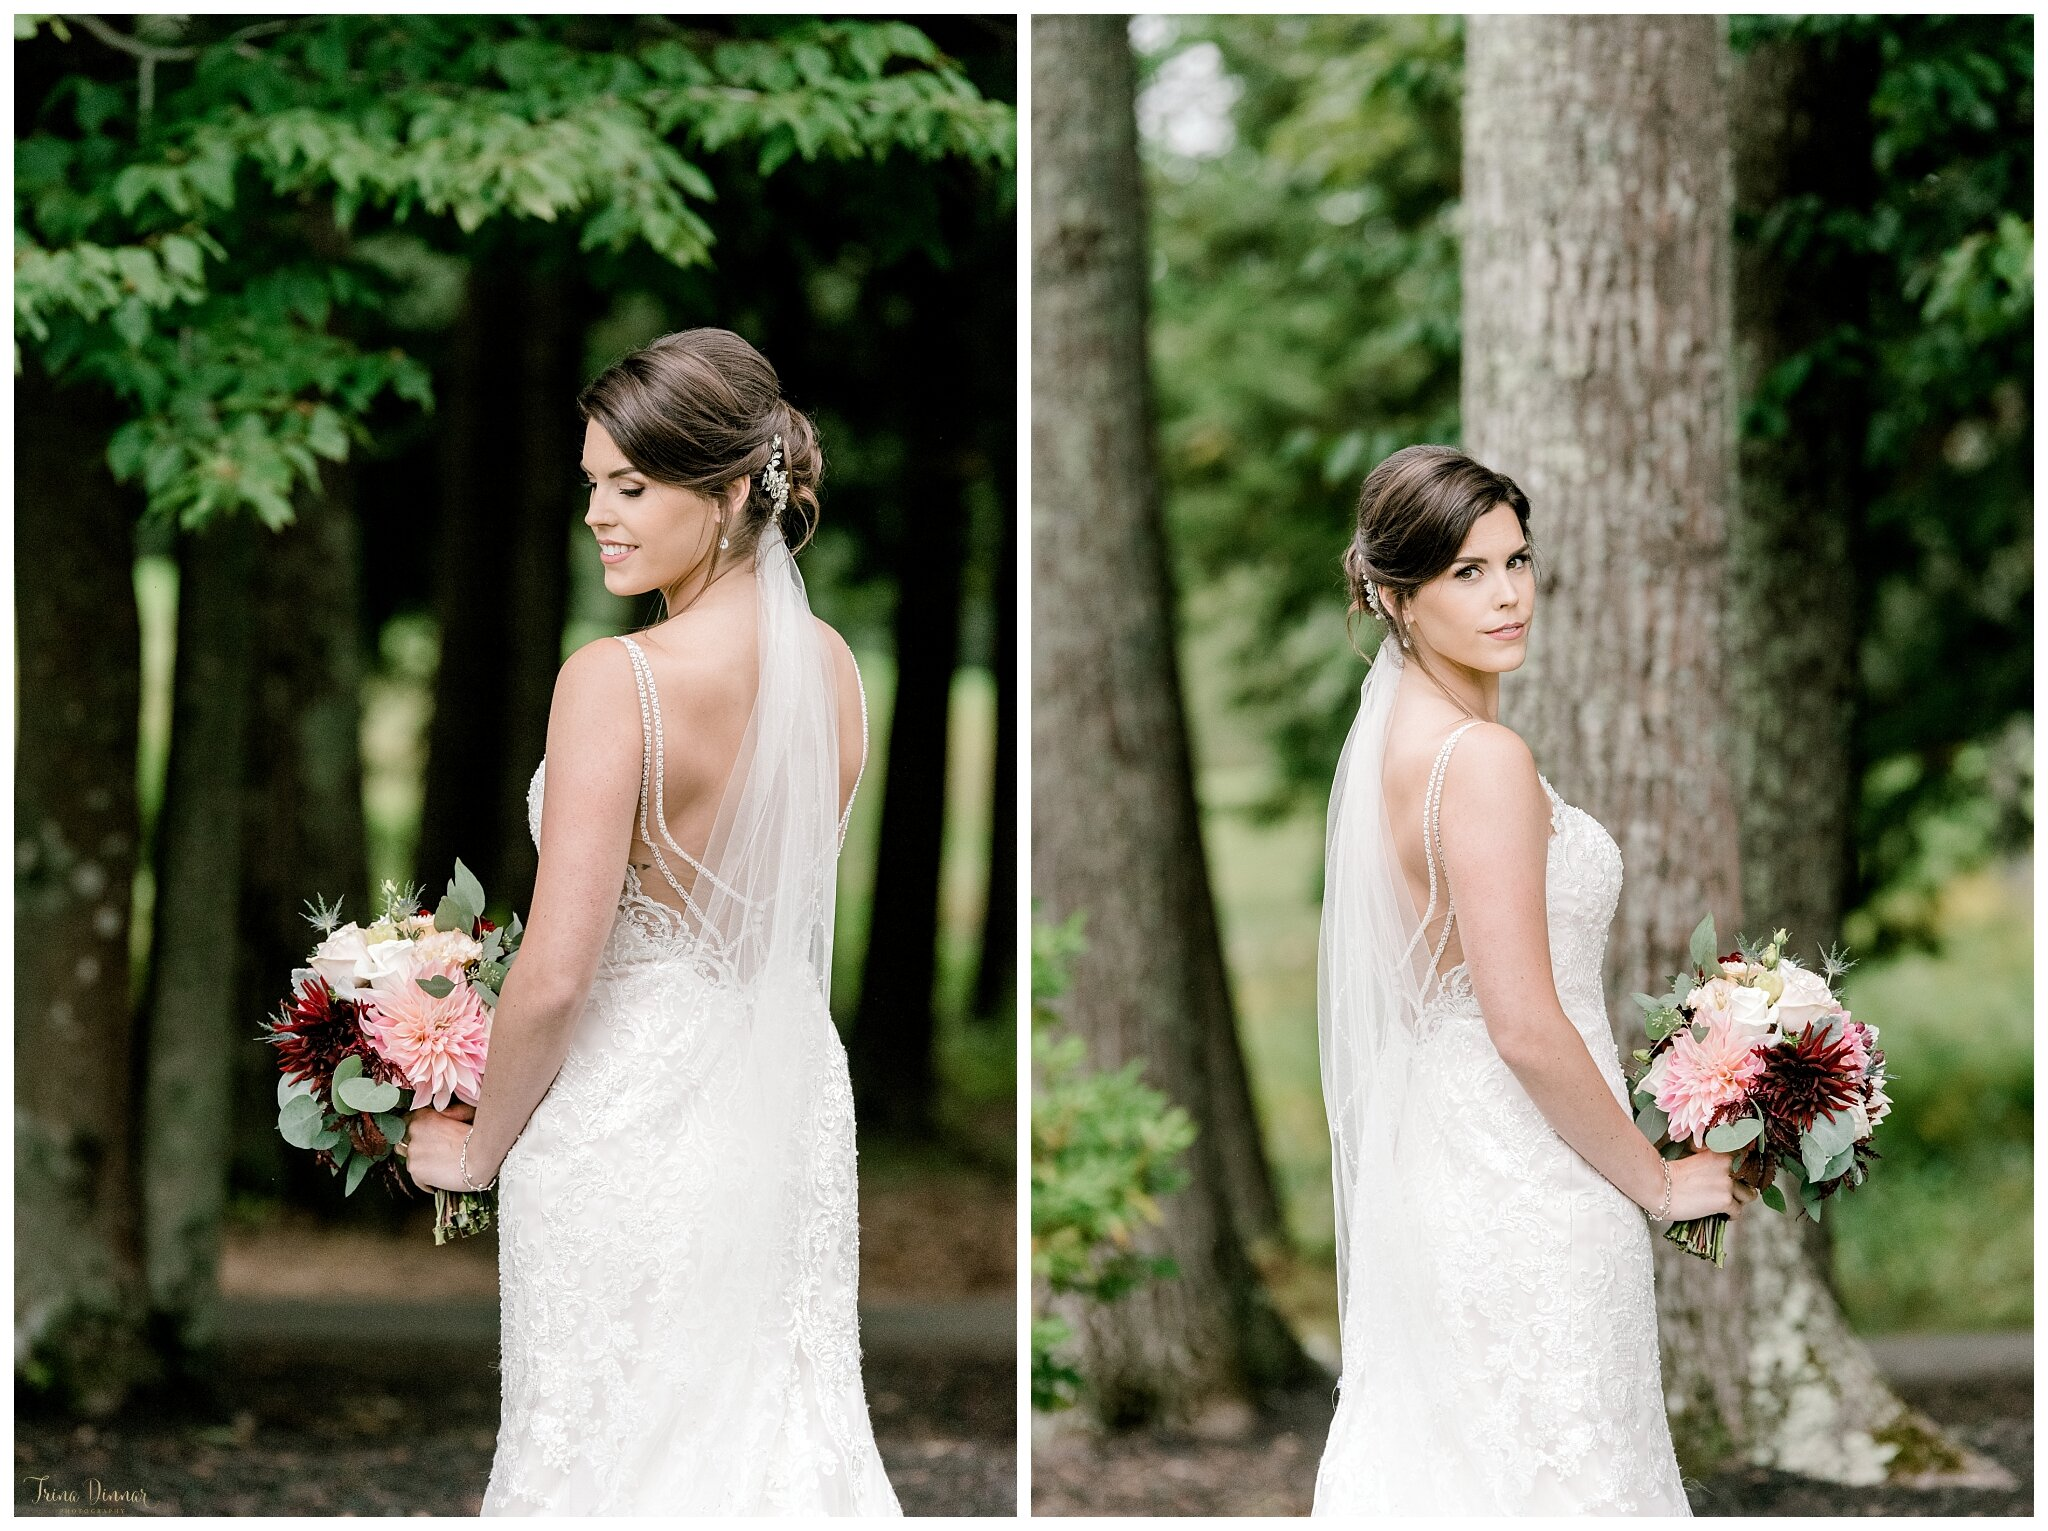 Bride's Wedding Day Portraits in Falmouth, Maine.